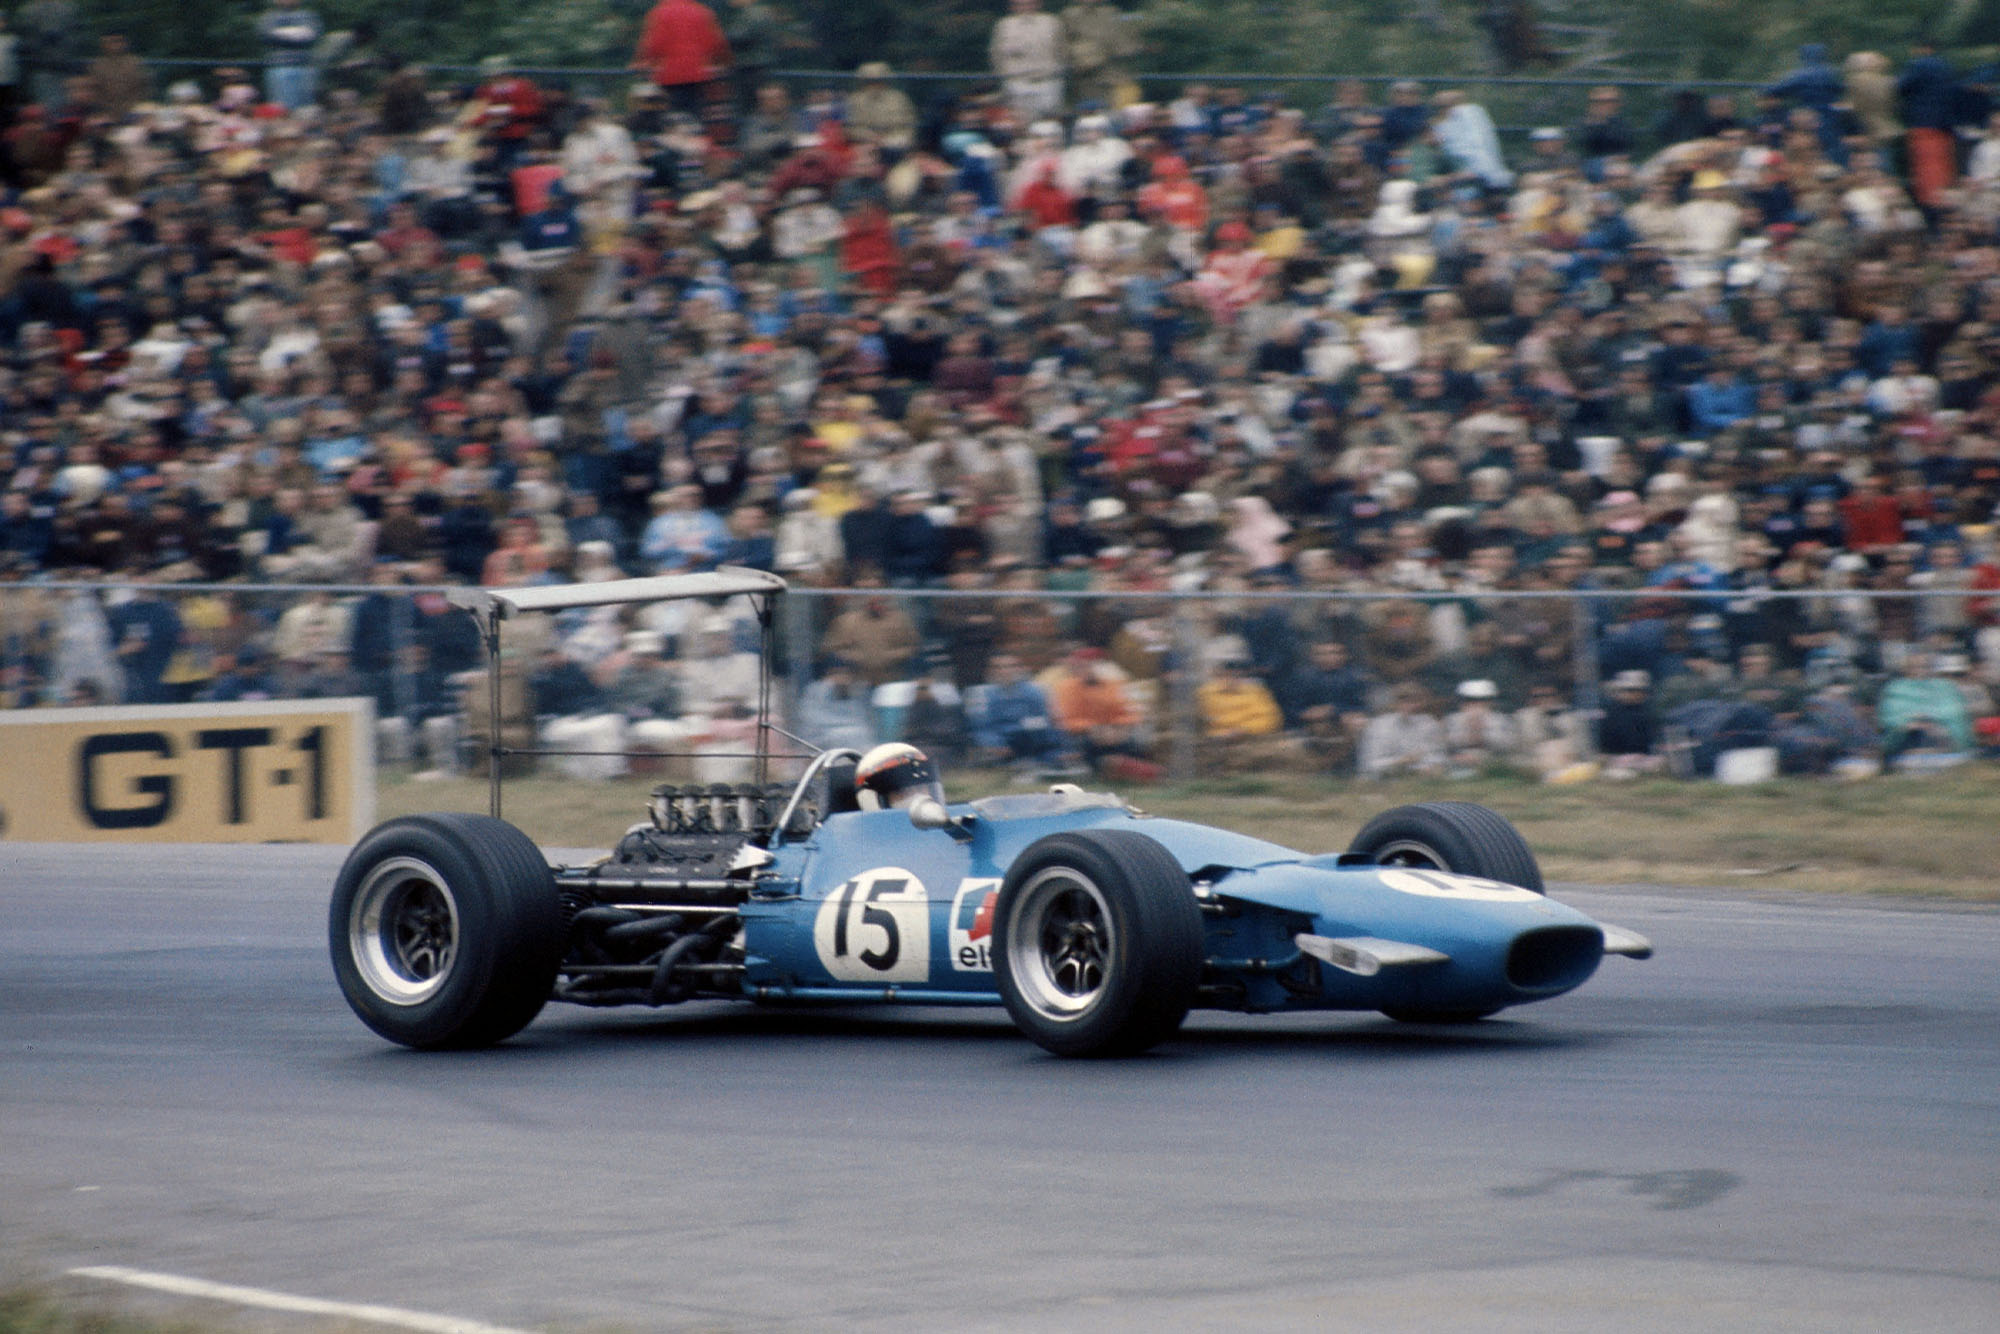 Jackie Stewart on his way to winning the 1968 US Grand Prix for Matra.